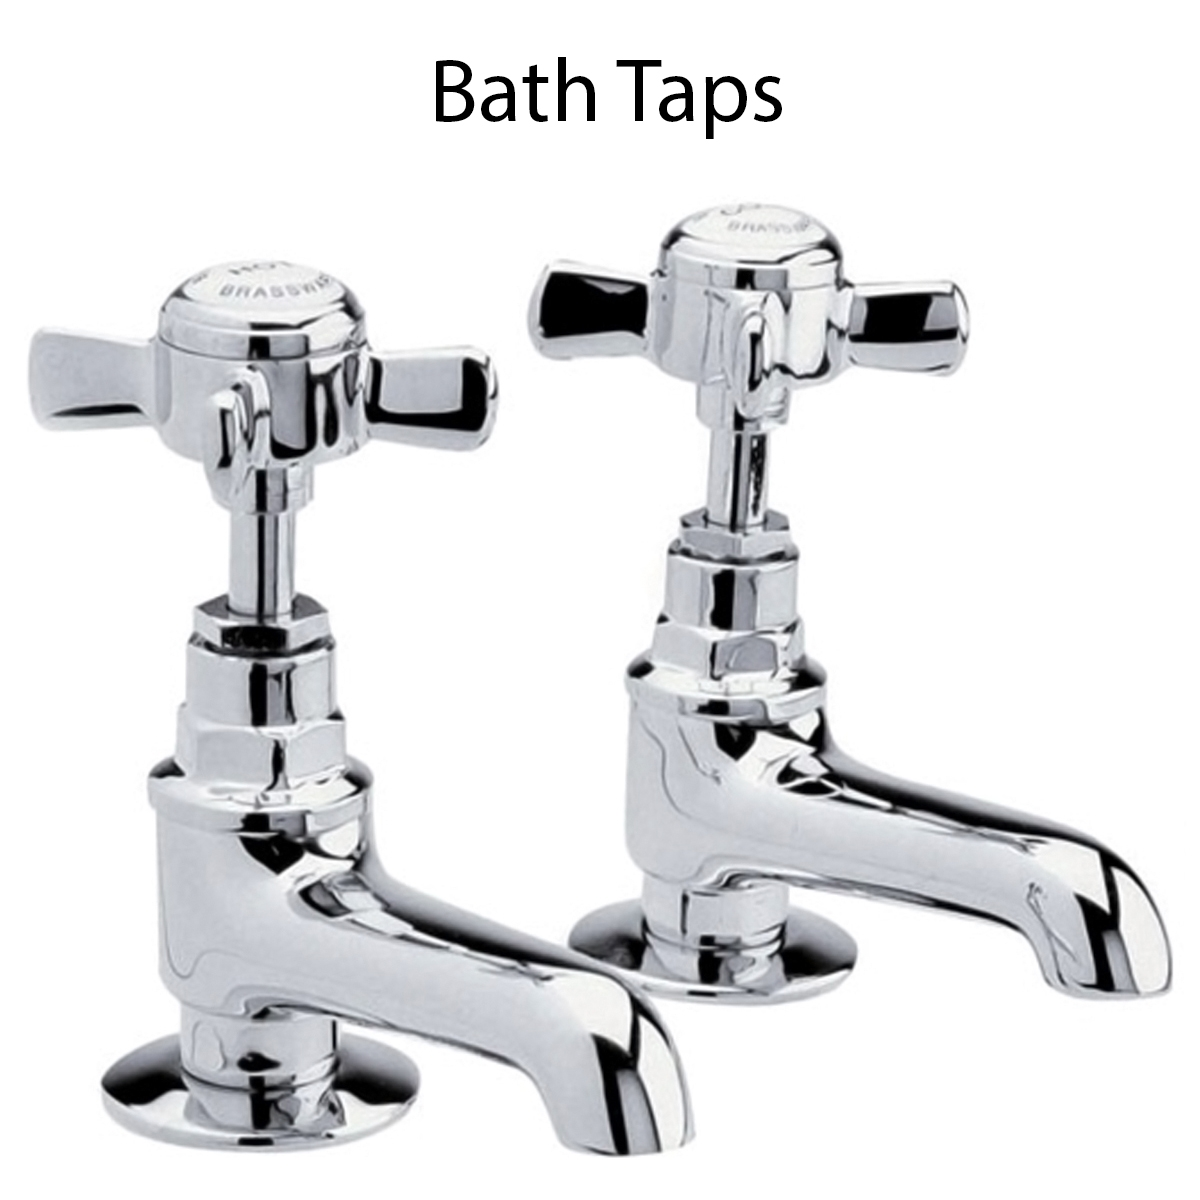 Ultra Beaumont Basin Taps and Bath Taps, Chrome